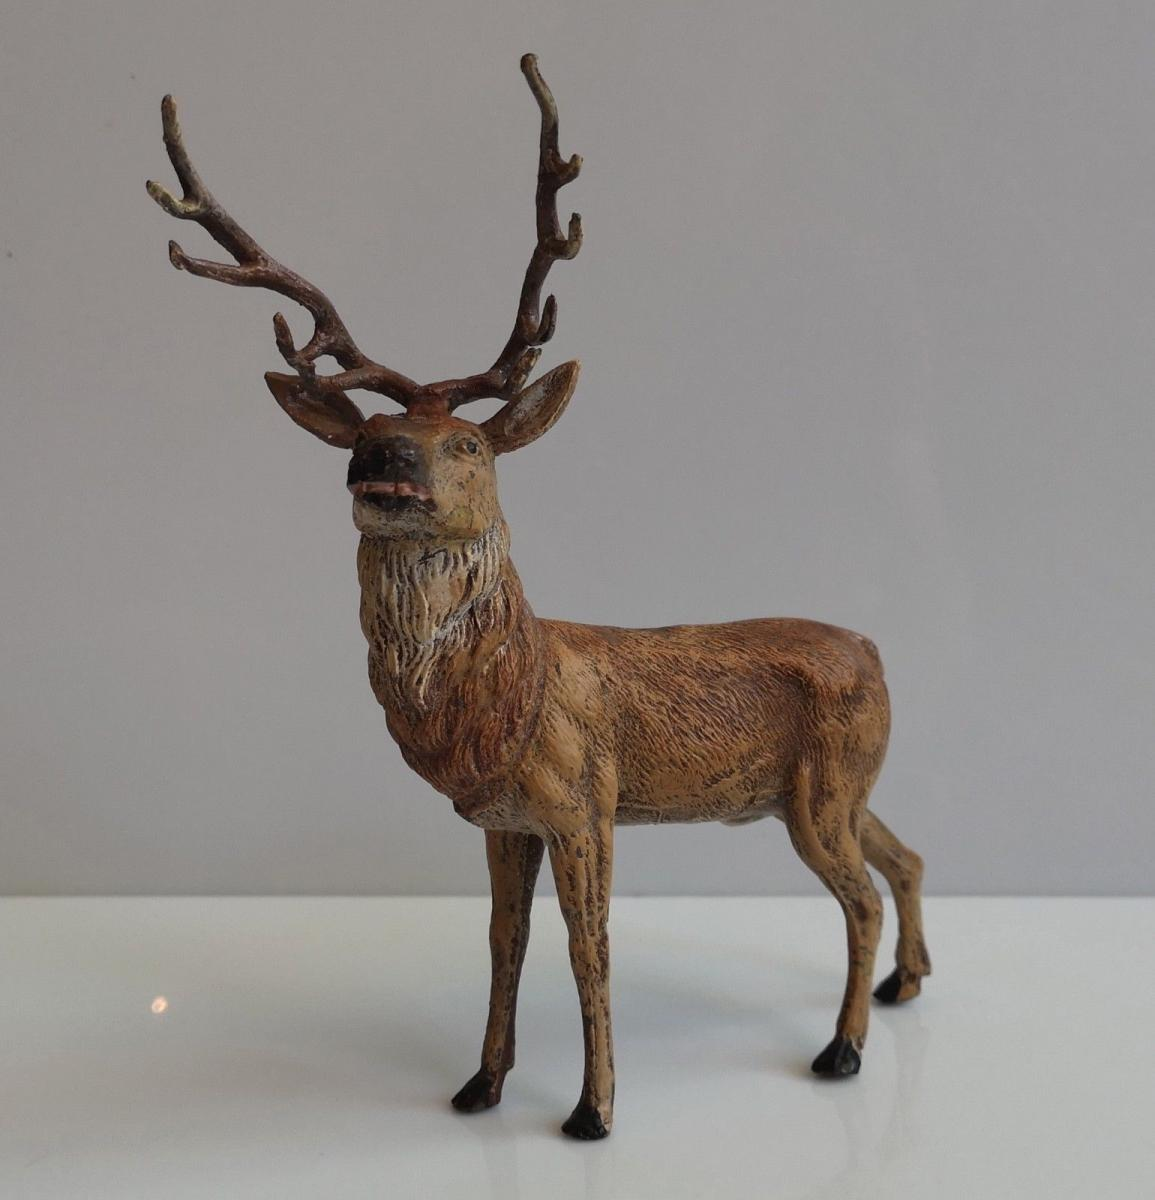 Grand Deer In Nuremberg - 19th Time - 19 X 15 Cm